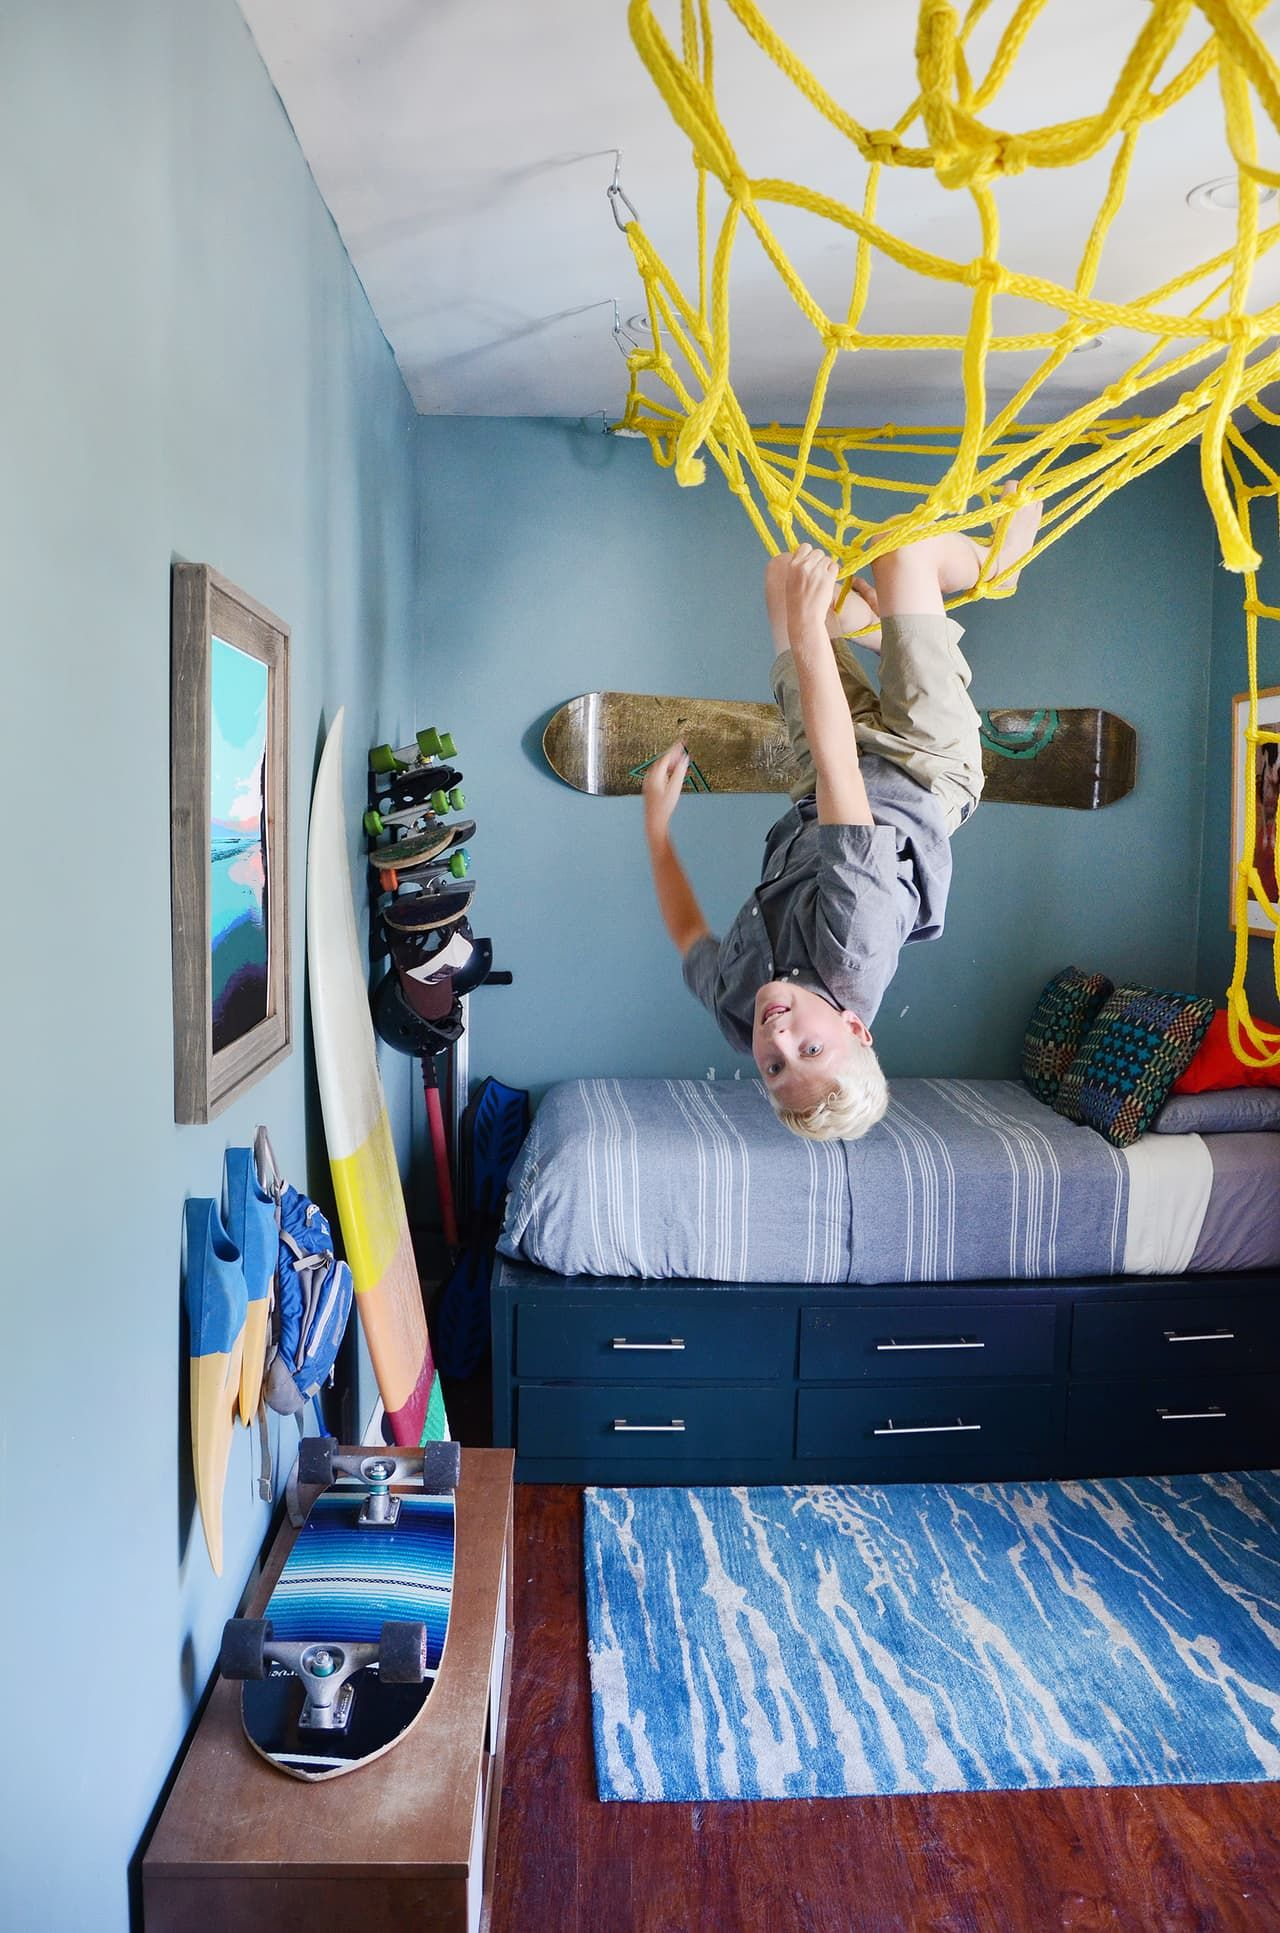 Kai Hangs From A Hanging Net In His Bedroom. Or Is It A Hanging Net